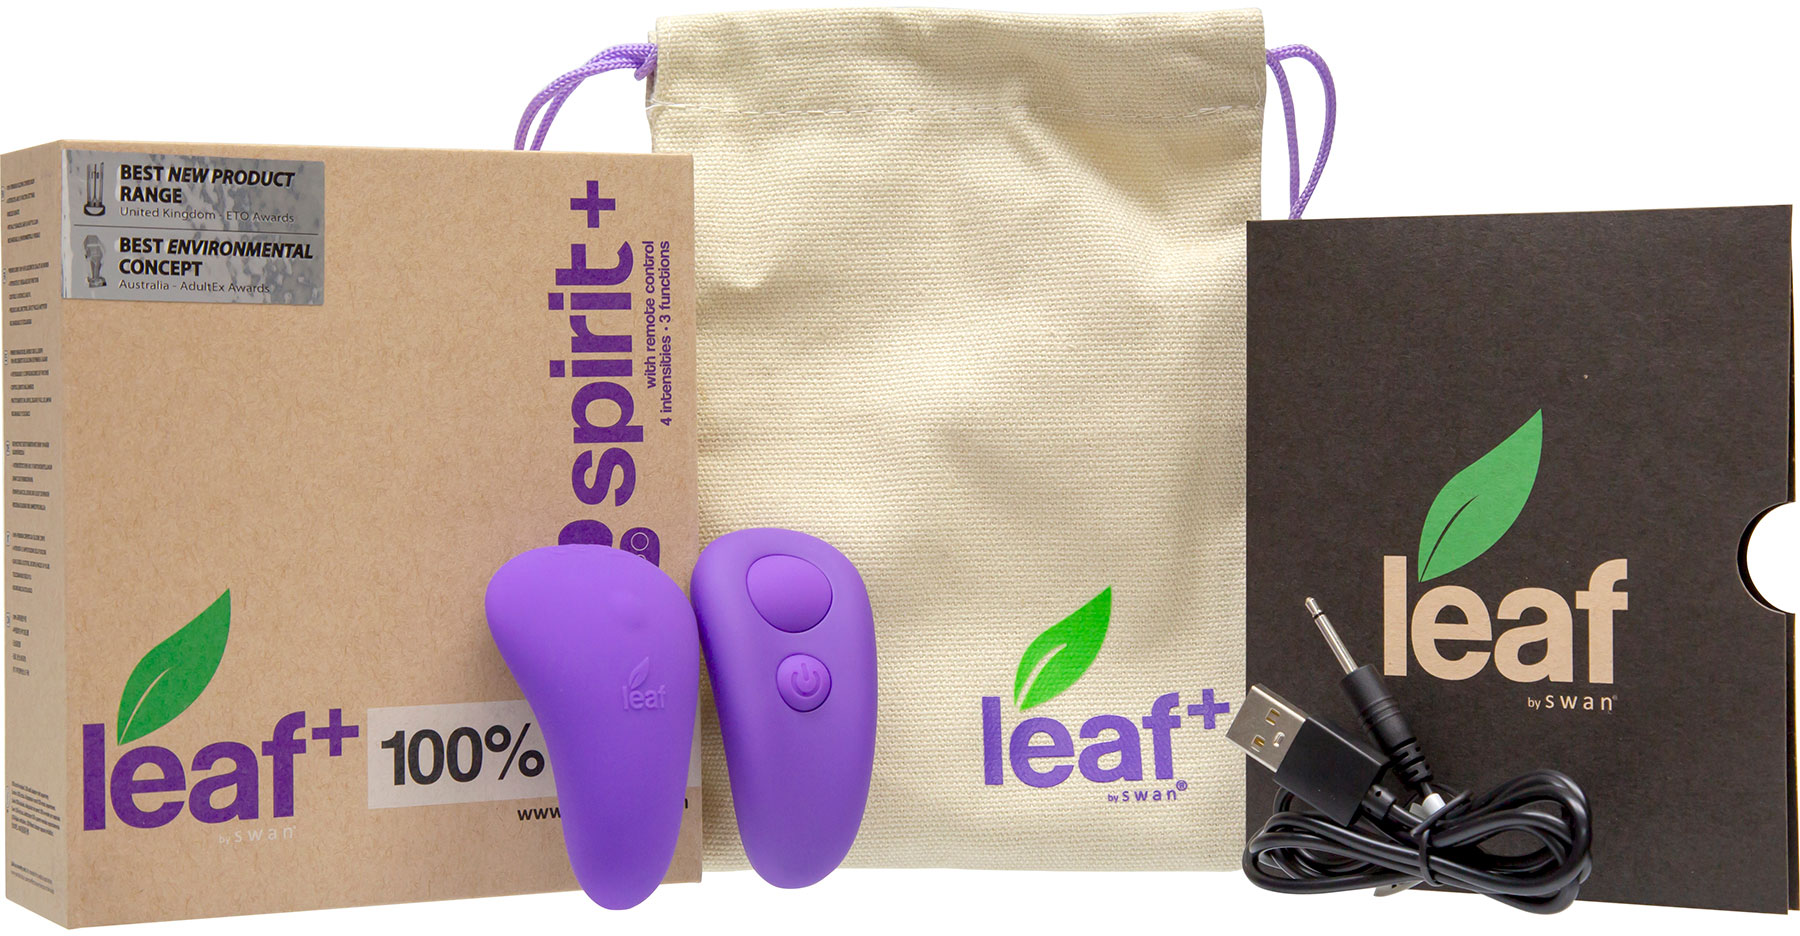 Leaf Spirit+ Rechargeable Remote Control Silicone Panty Vibrator - Contents